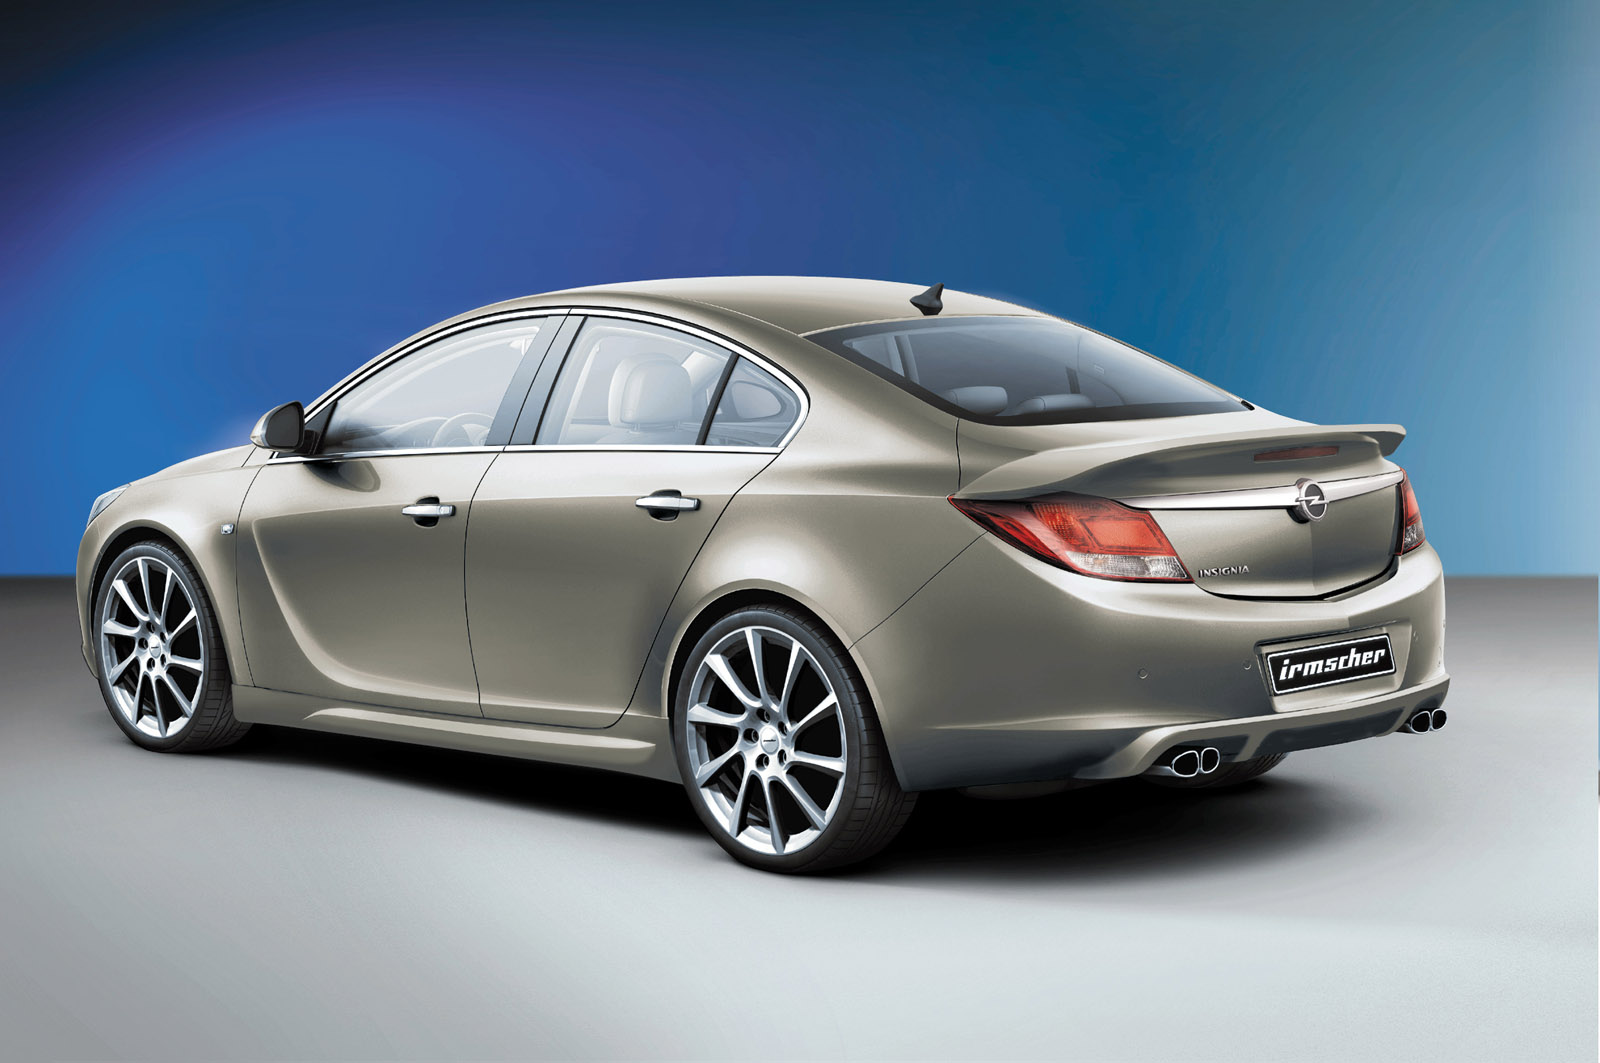 The New Opel Insignia Refined By Irmscher